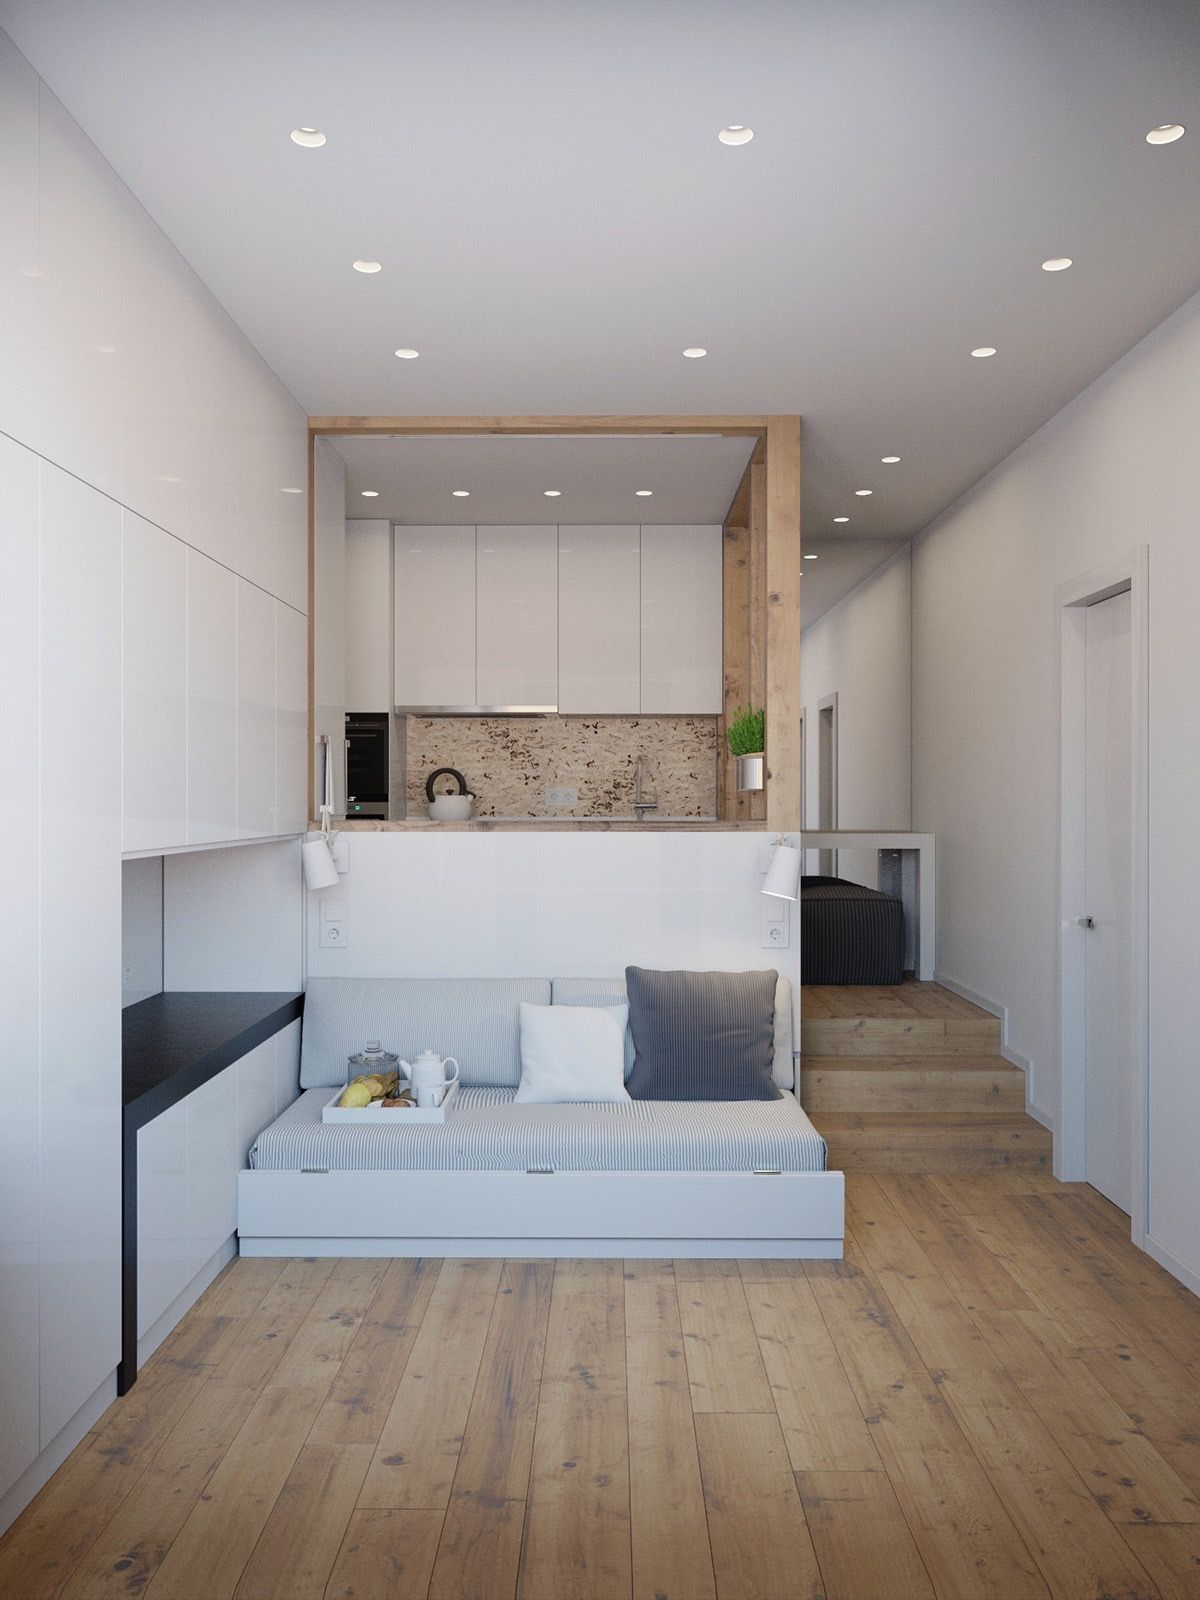 Our final living space, coming in at 25sqm, is a truly innovative use of